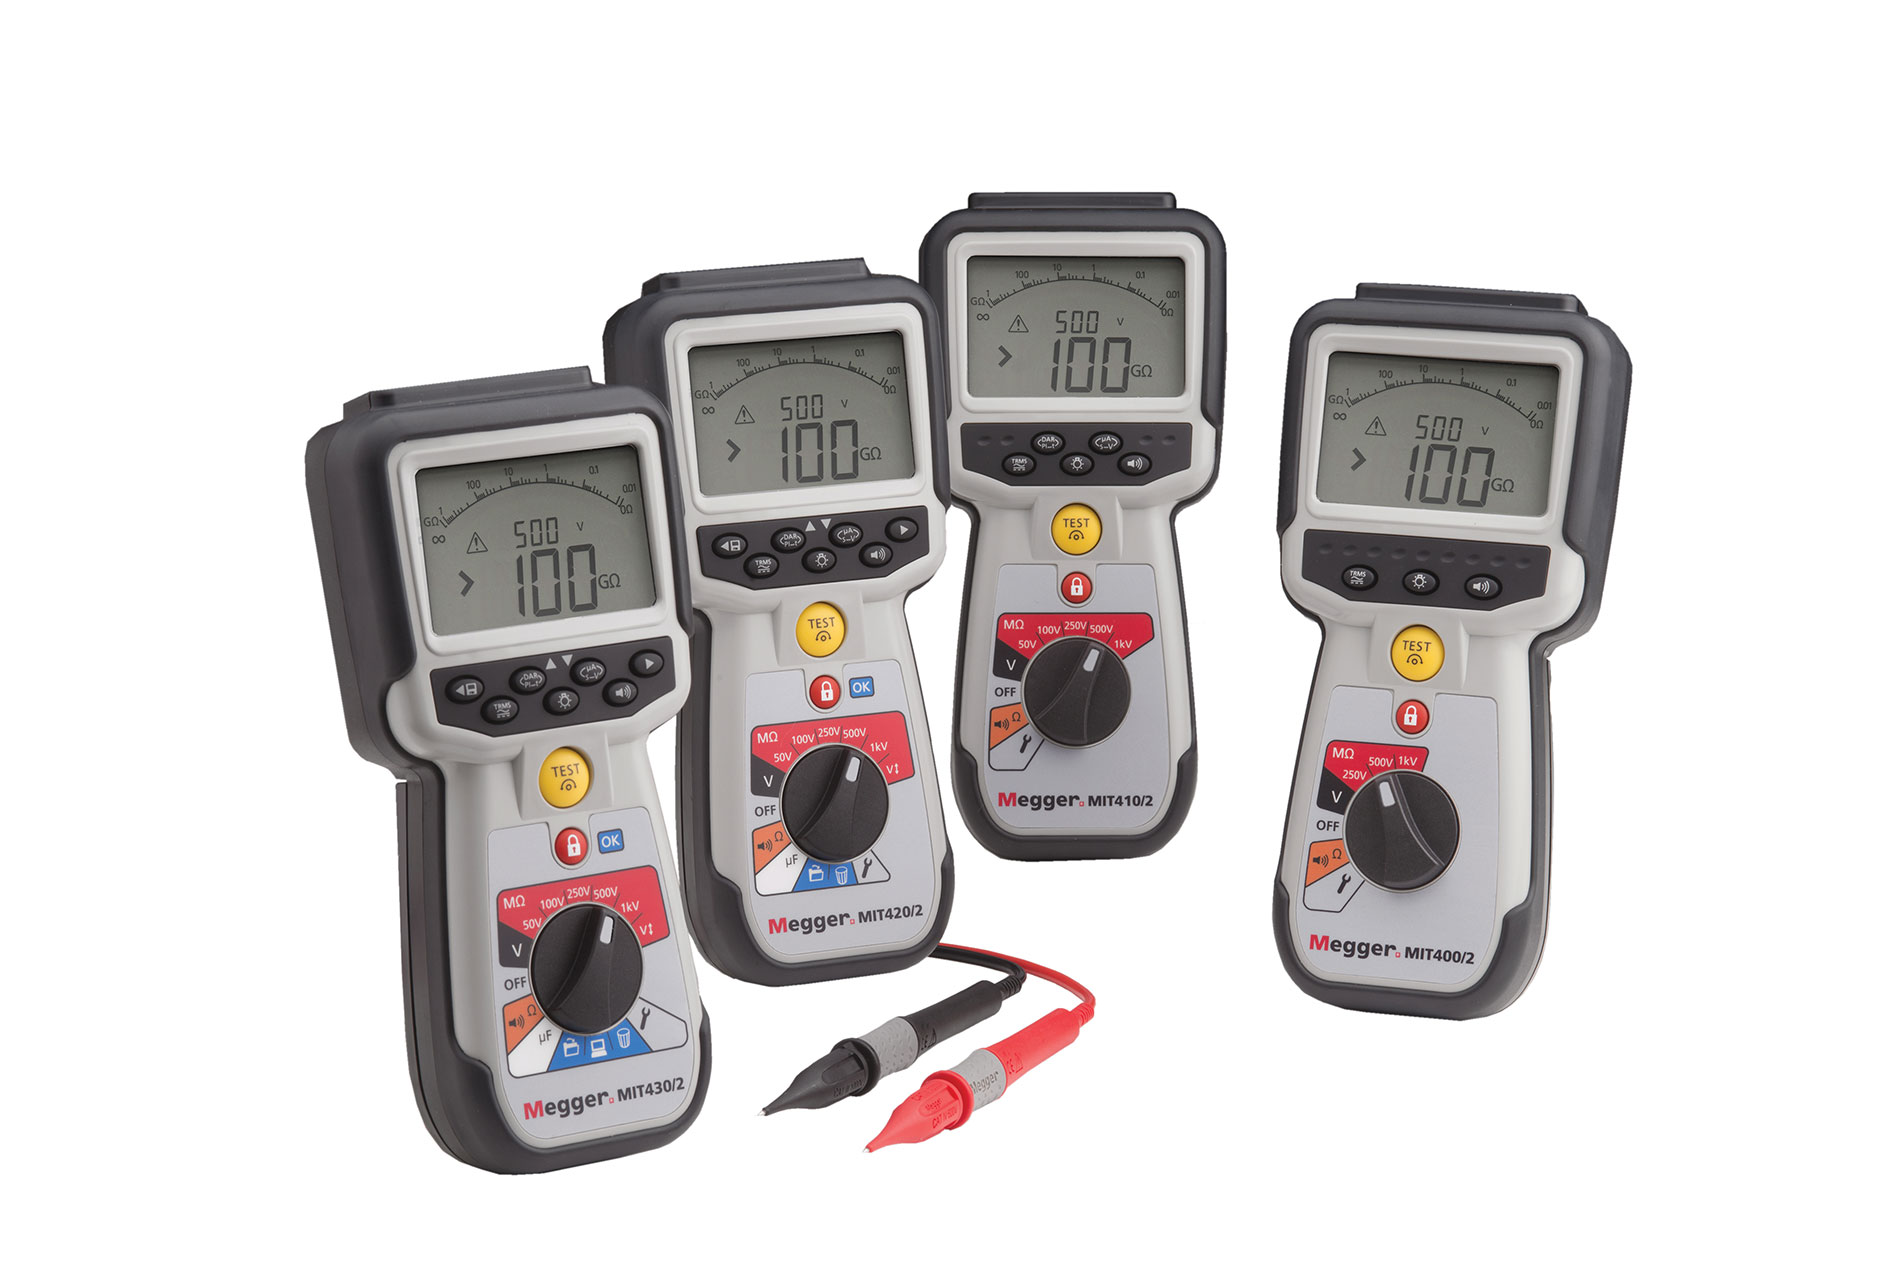 Megger MIT400-2 series testers